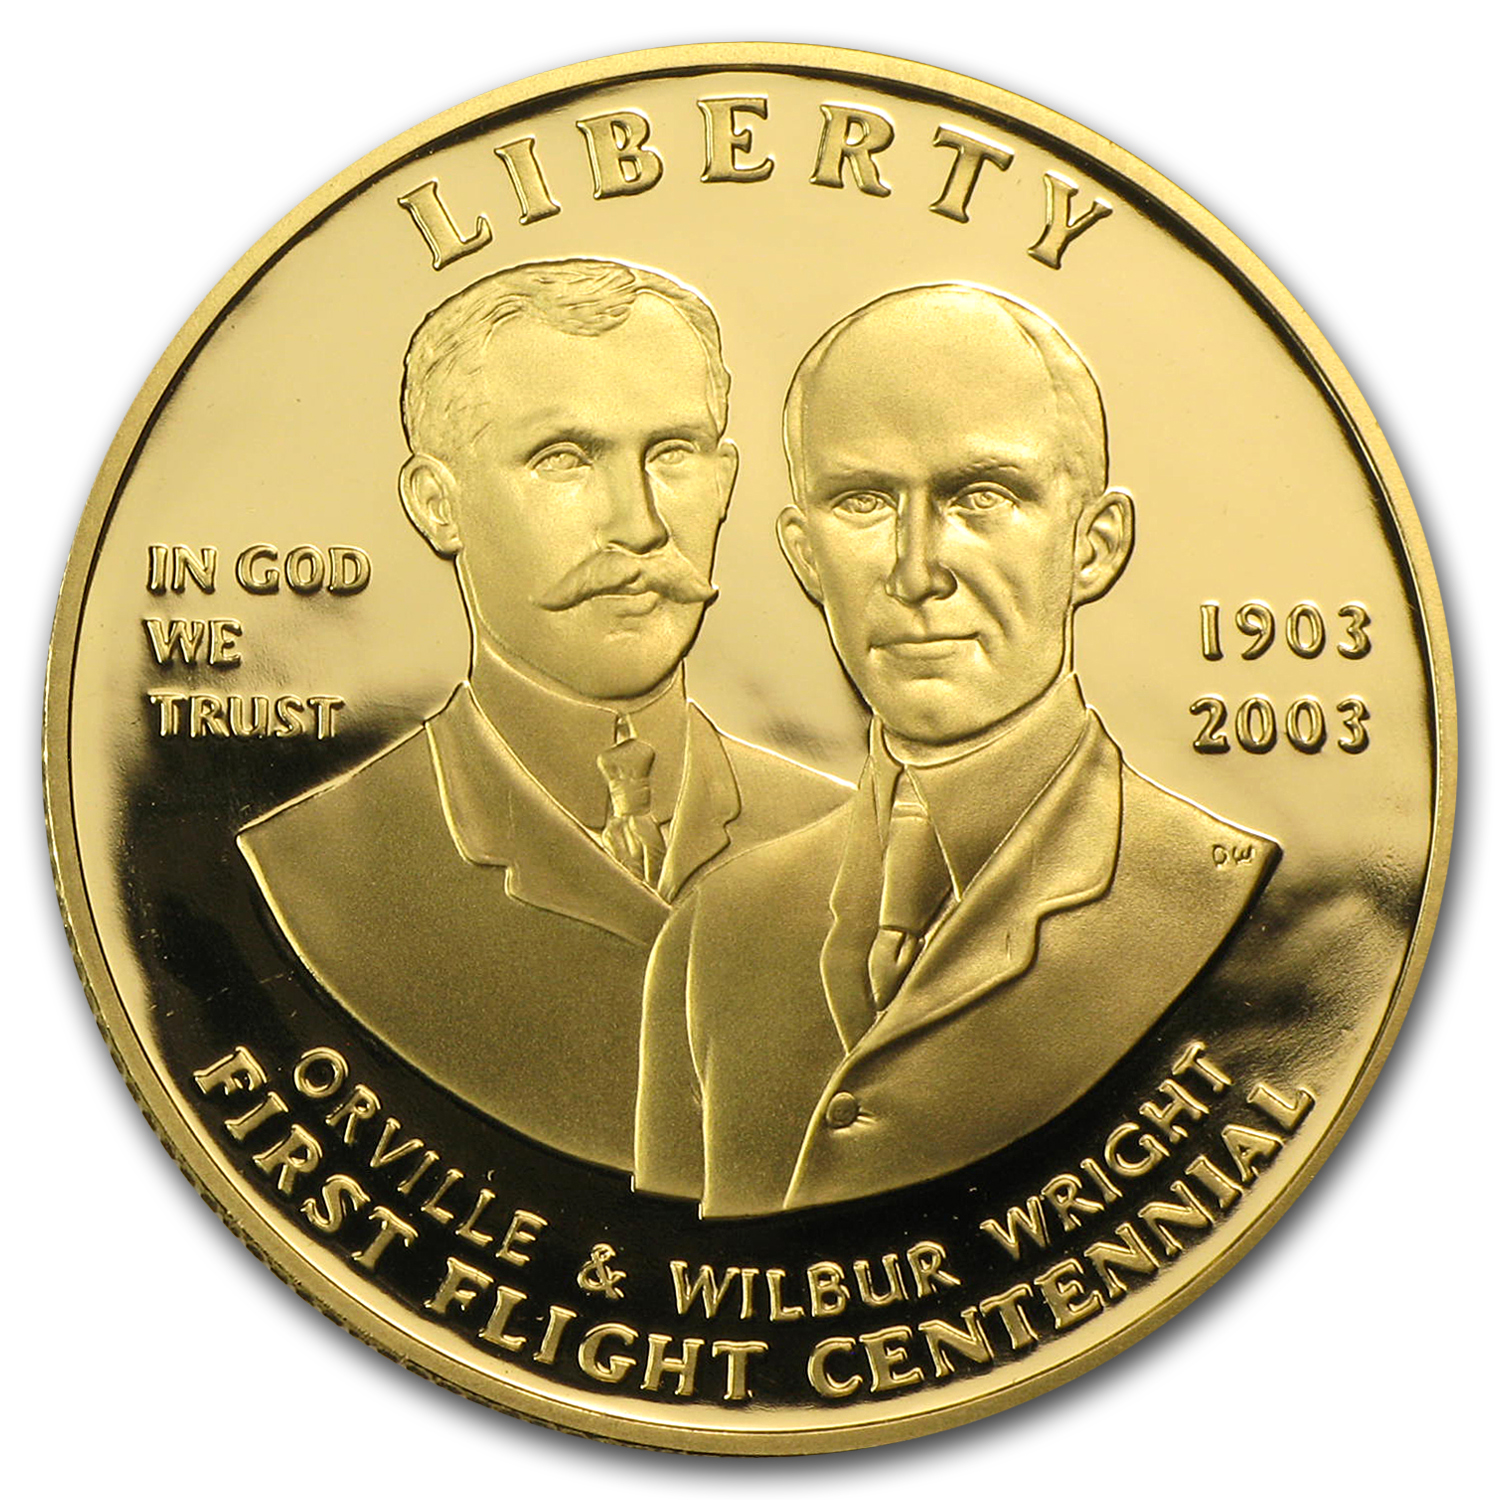 2003-W Gold $10 Commem First Flight Centennial Prf (Capsule only)